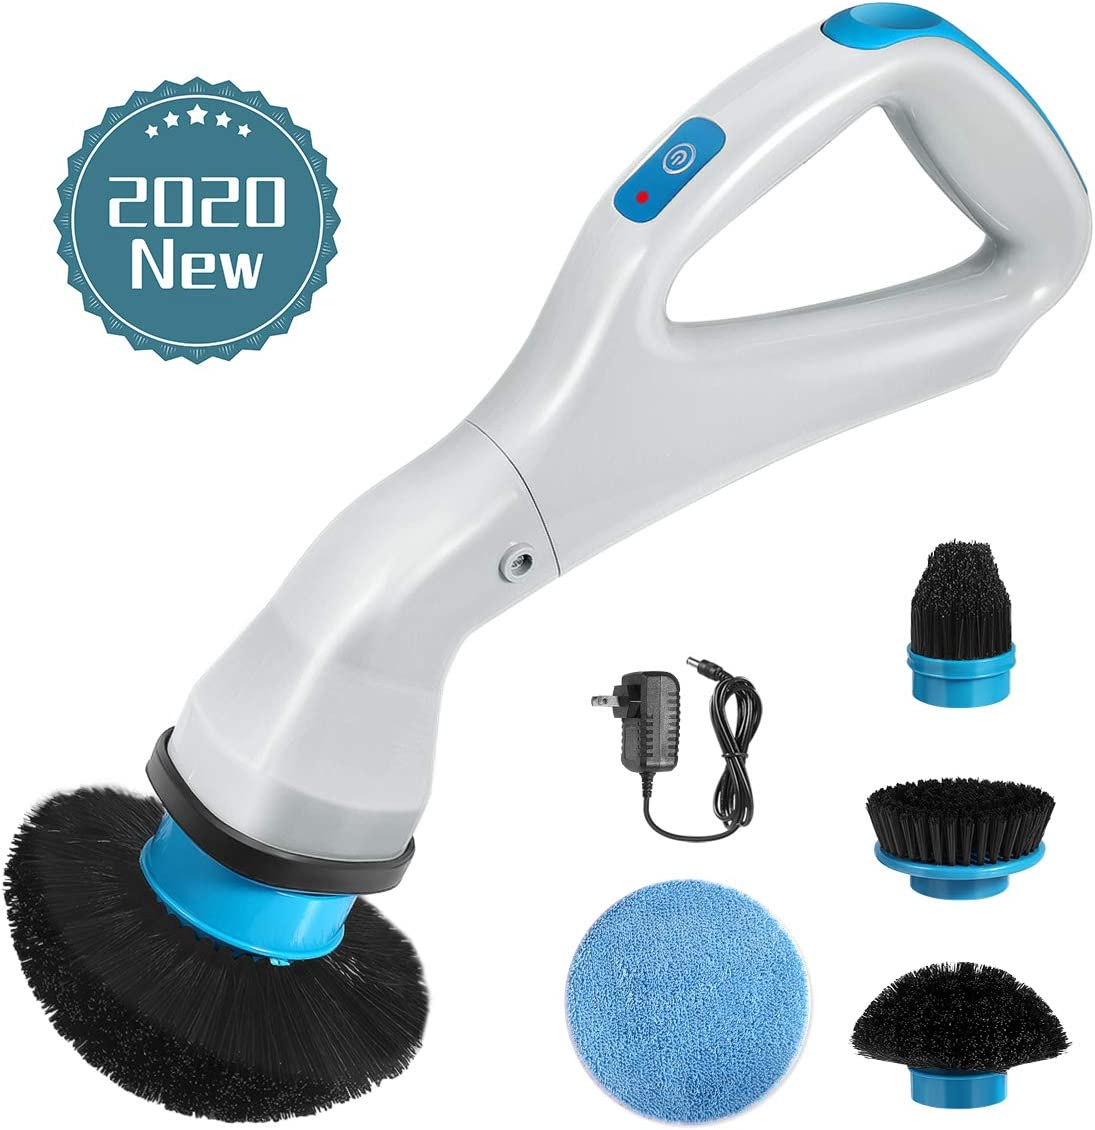 Electric Spin Scrubber, 2020 New Handheld Cleaning Brush Multi-function Cordless Rechargeable 360-Degree Rotation with 4 Replacement Scrubber Heads for Cleaning Sink Tile Floor Window Bathtub